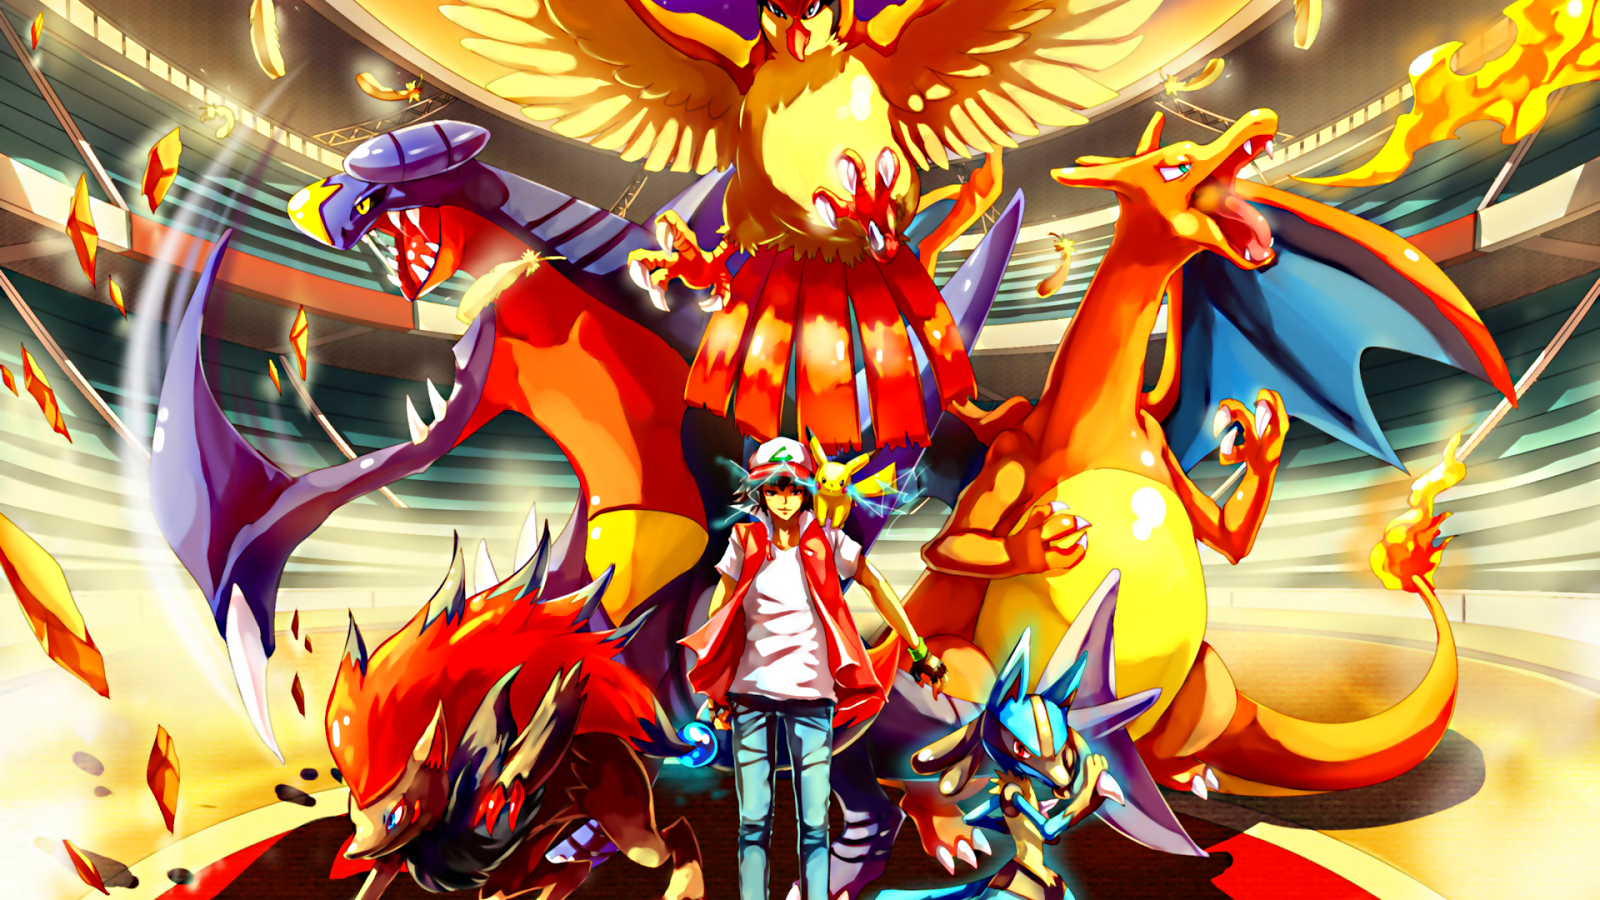 Pokemon Hd Wallpapers Page 0 Cool Pokemon Wallpapers Cute Pokemon Wallpaper Pokemon Images